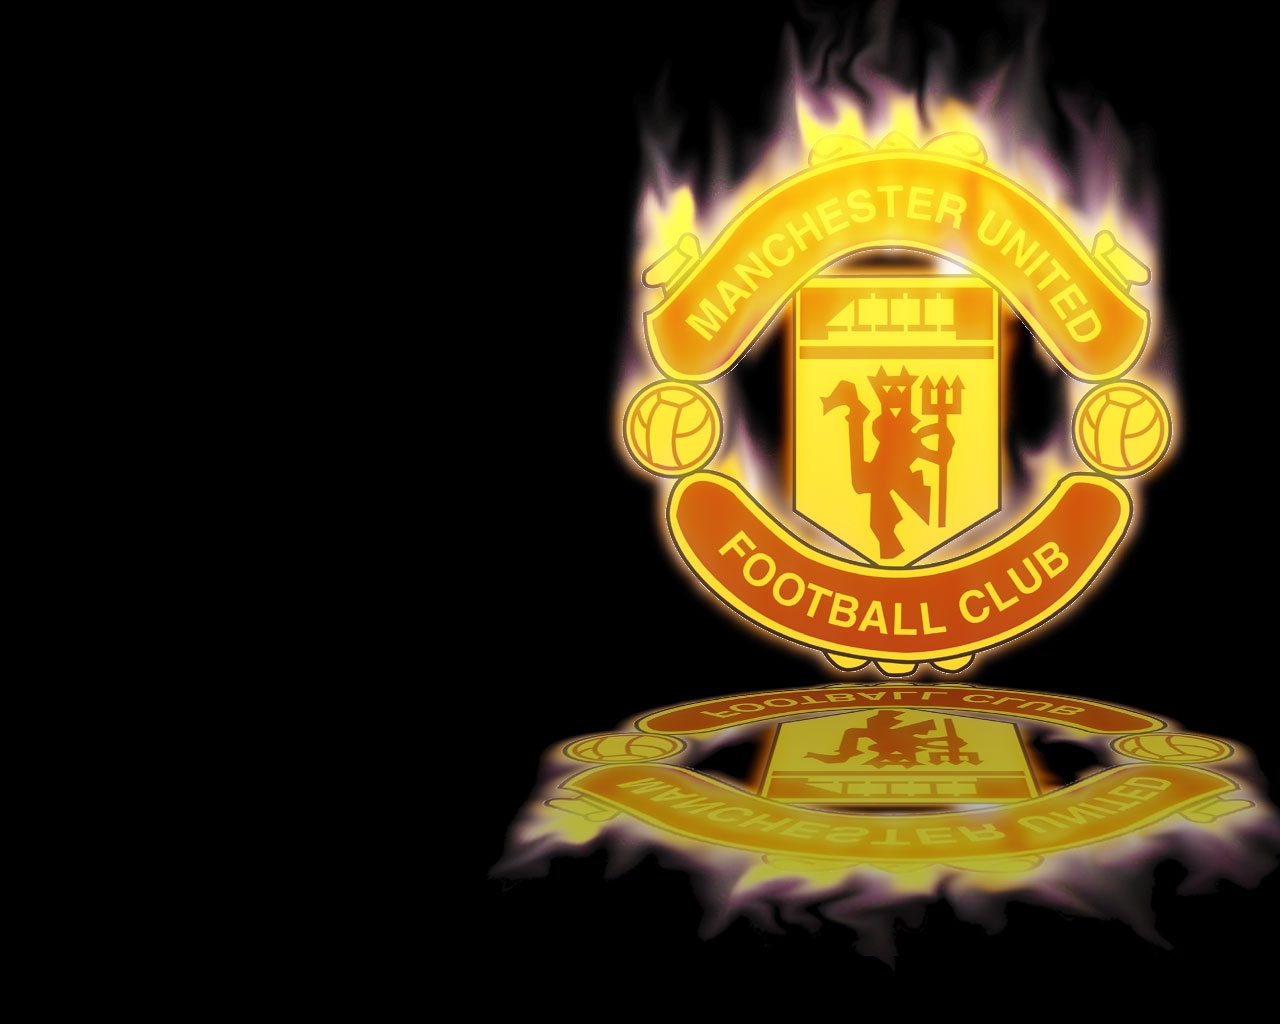 Manchester United Wallpapers HD HD Wallpapers Backgrounds Photos 1280x1024